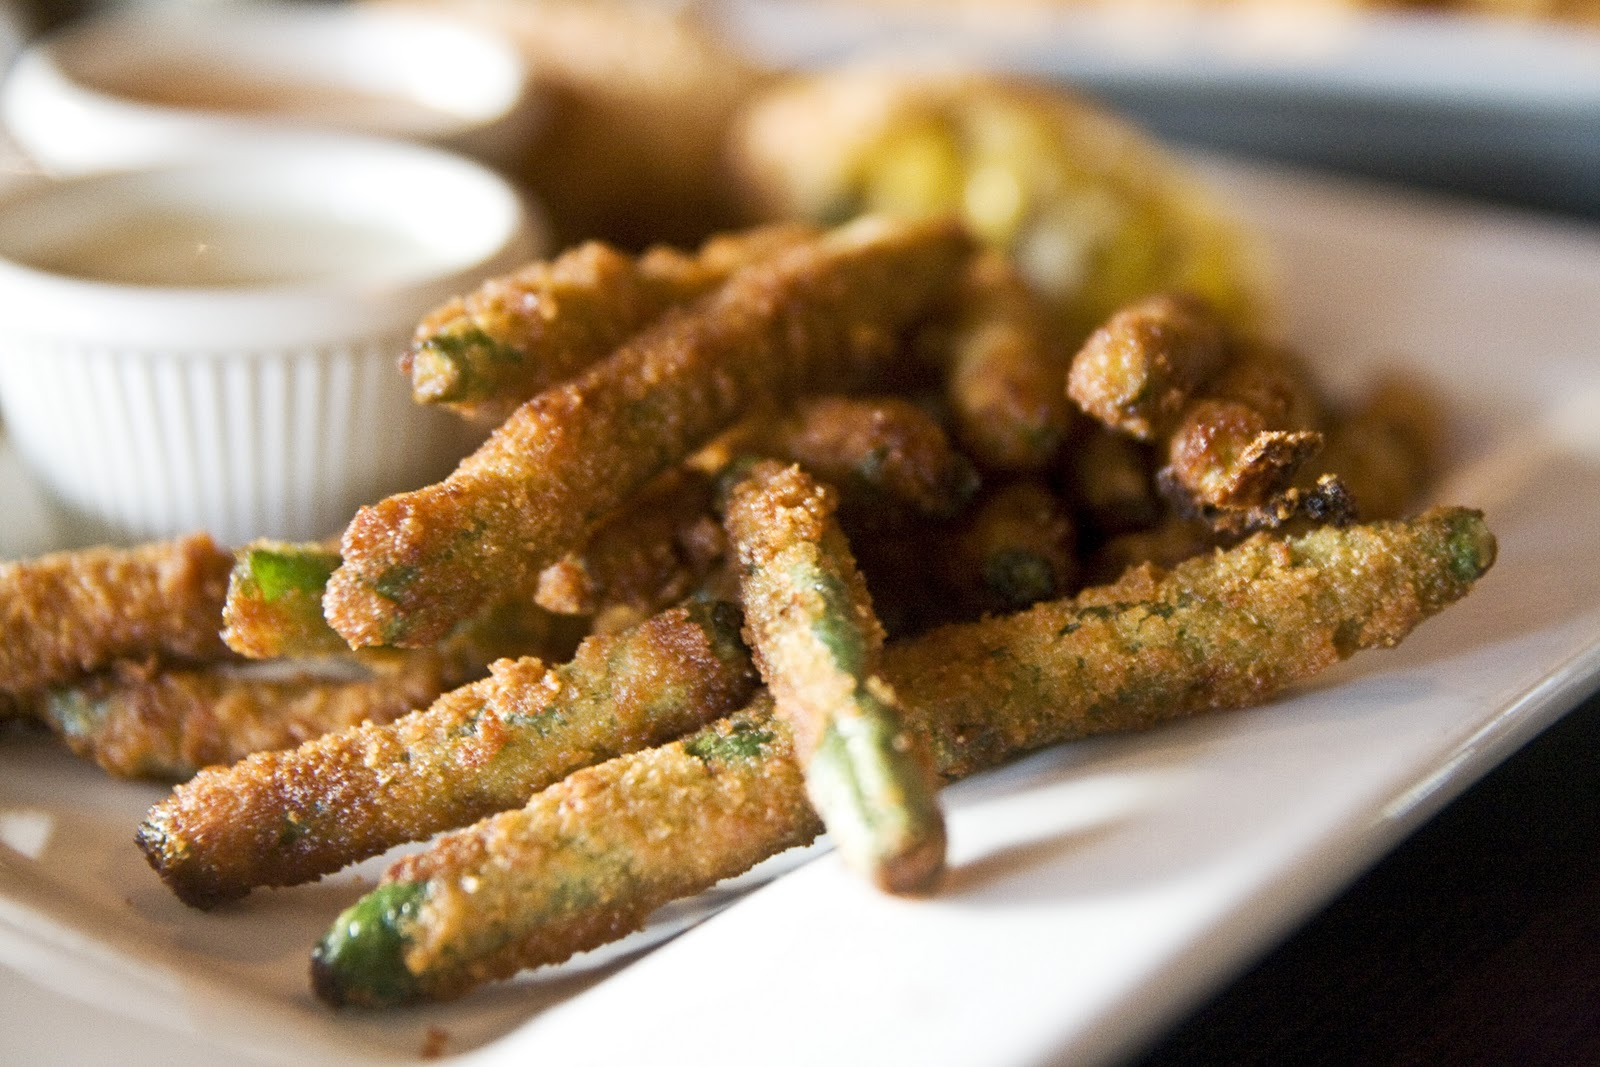 Fried Green Beans Fresh Green Beans Battered With Corn Meal And Fried Comes With A Ranch And Spicy Dipping Sauce